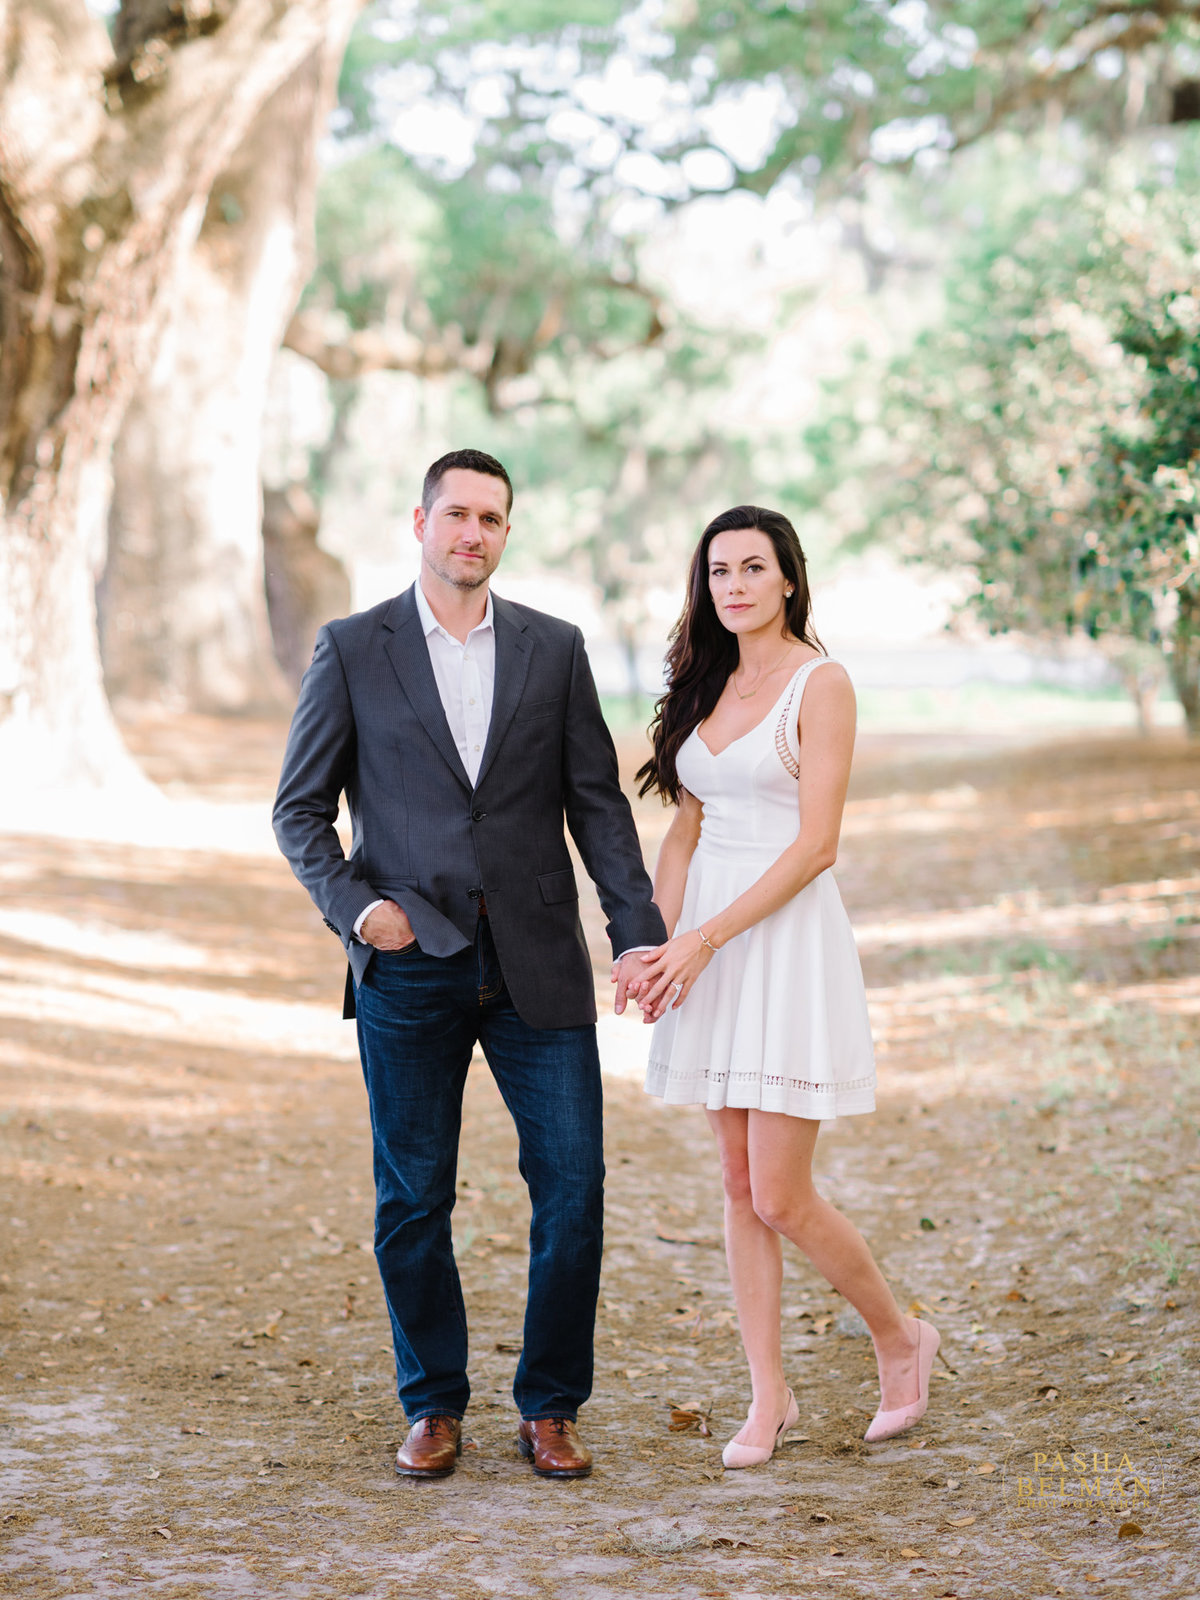 Charleston Engagement Photography | Engagement Pictures in Charleston | Engagement Portraits by Pasha Belman Photographer-10